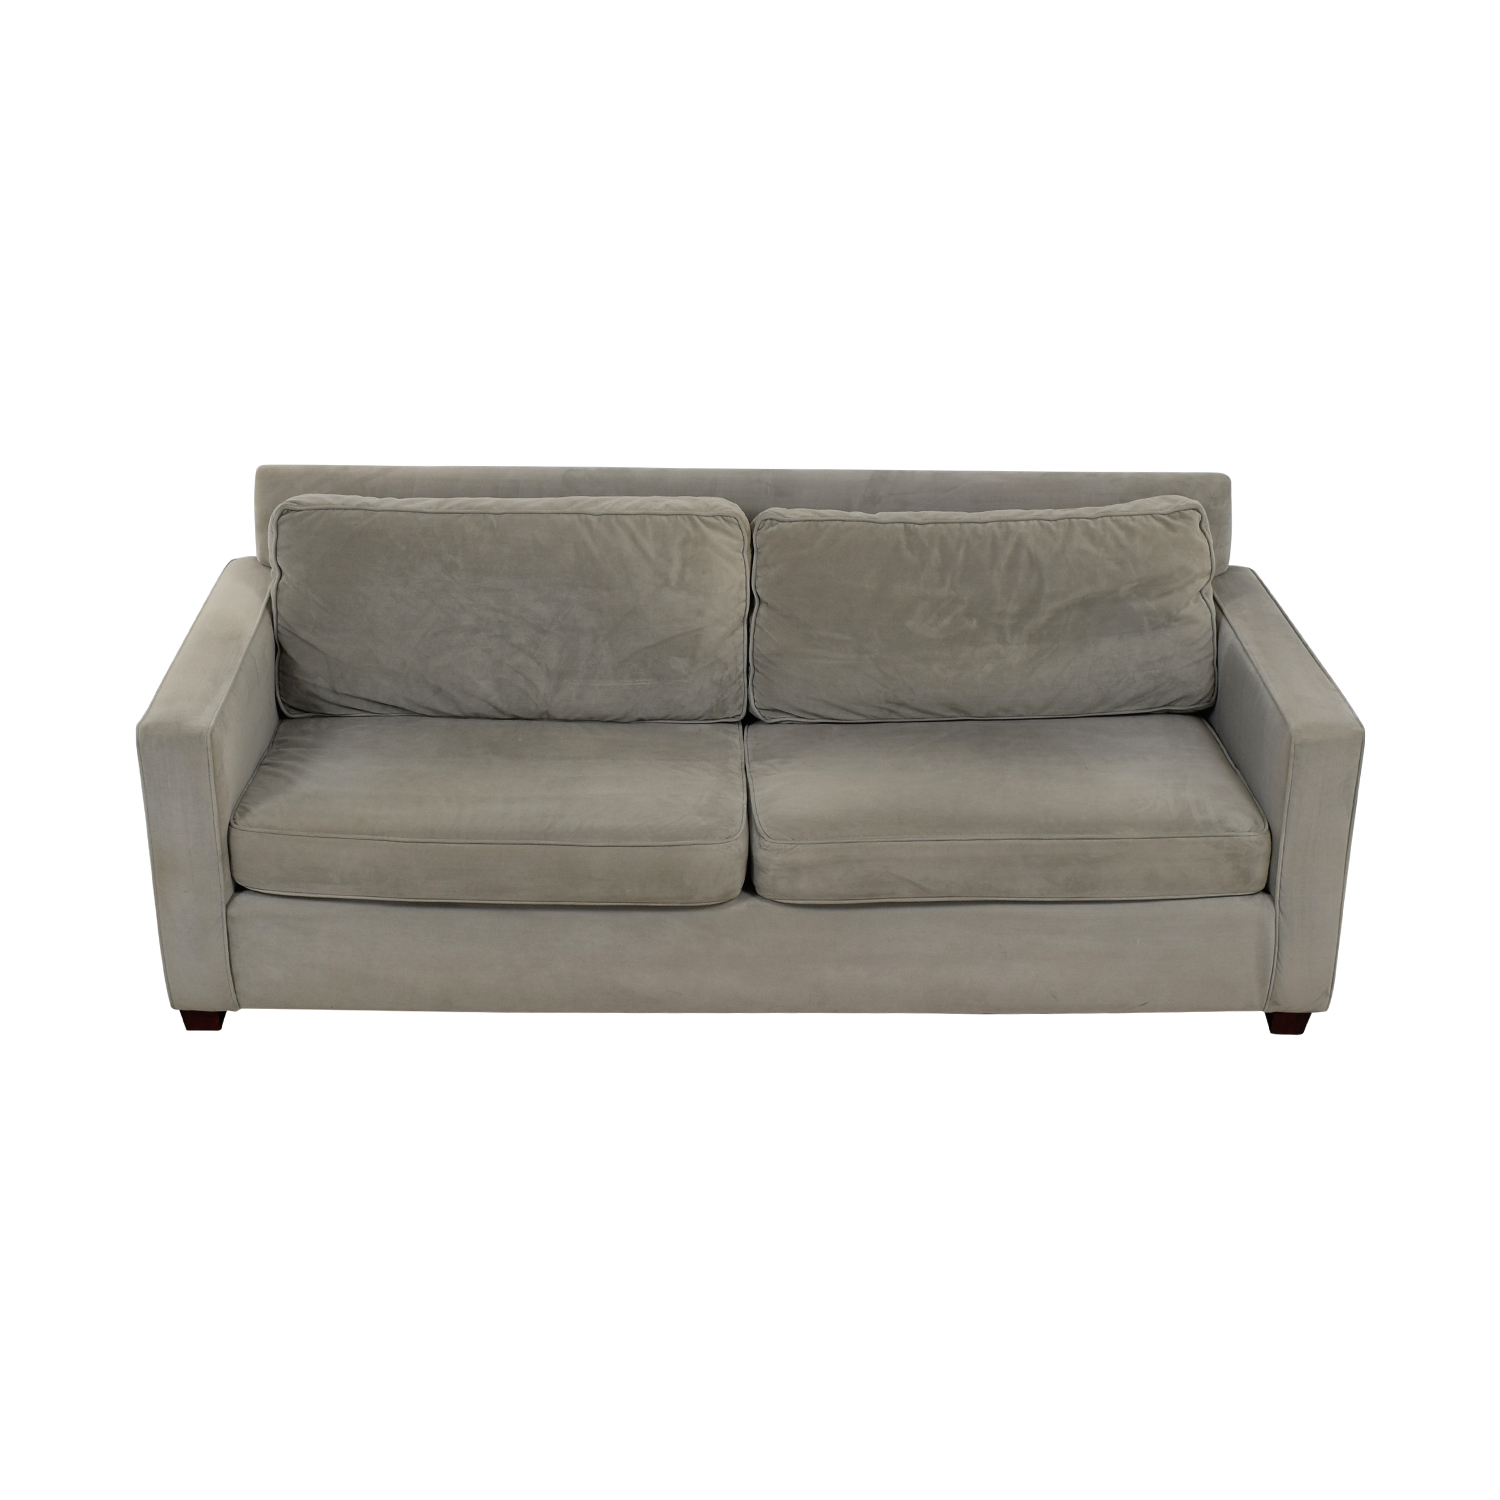 buy West Elm Henry Dove Grey Two-Cushion Sofa West Elm Sofas